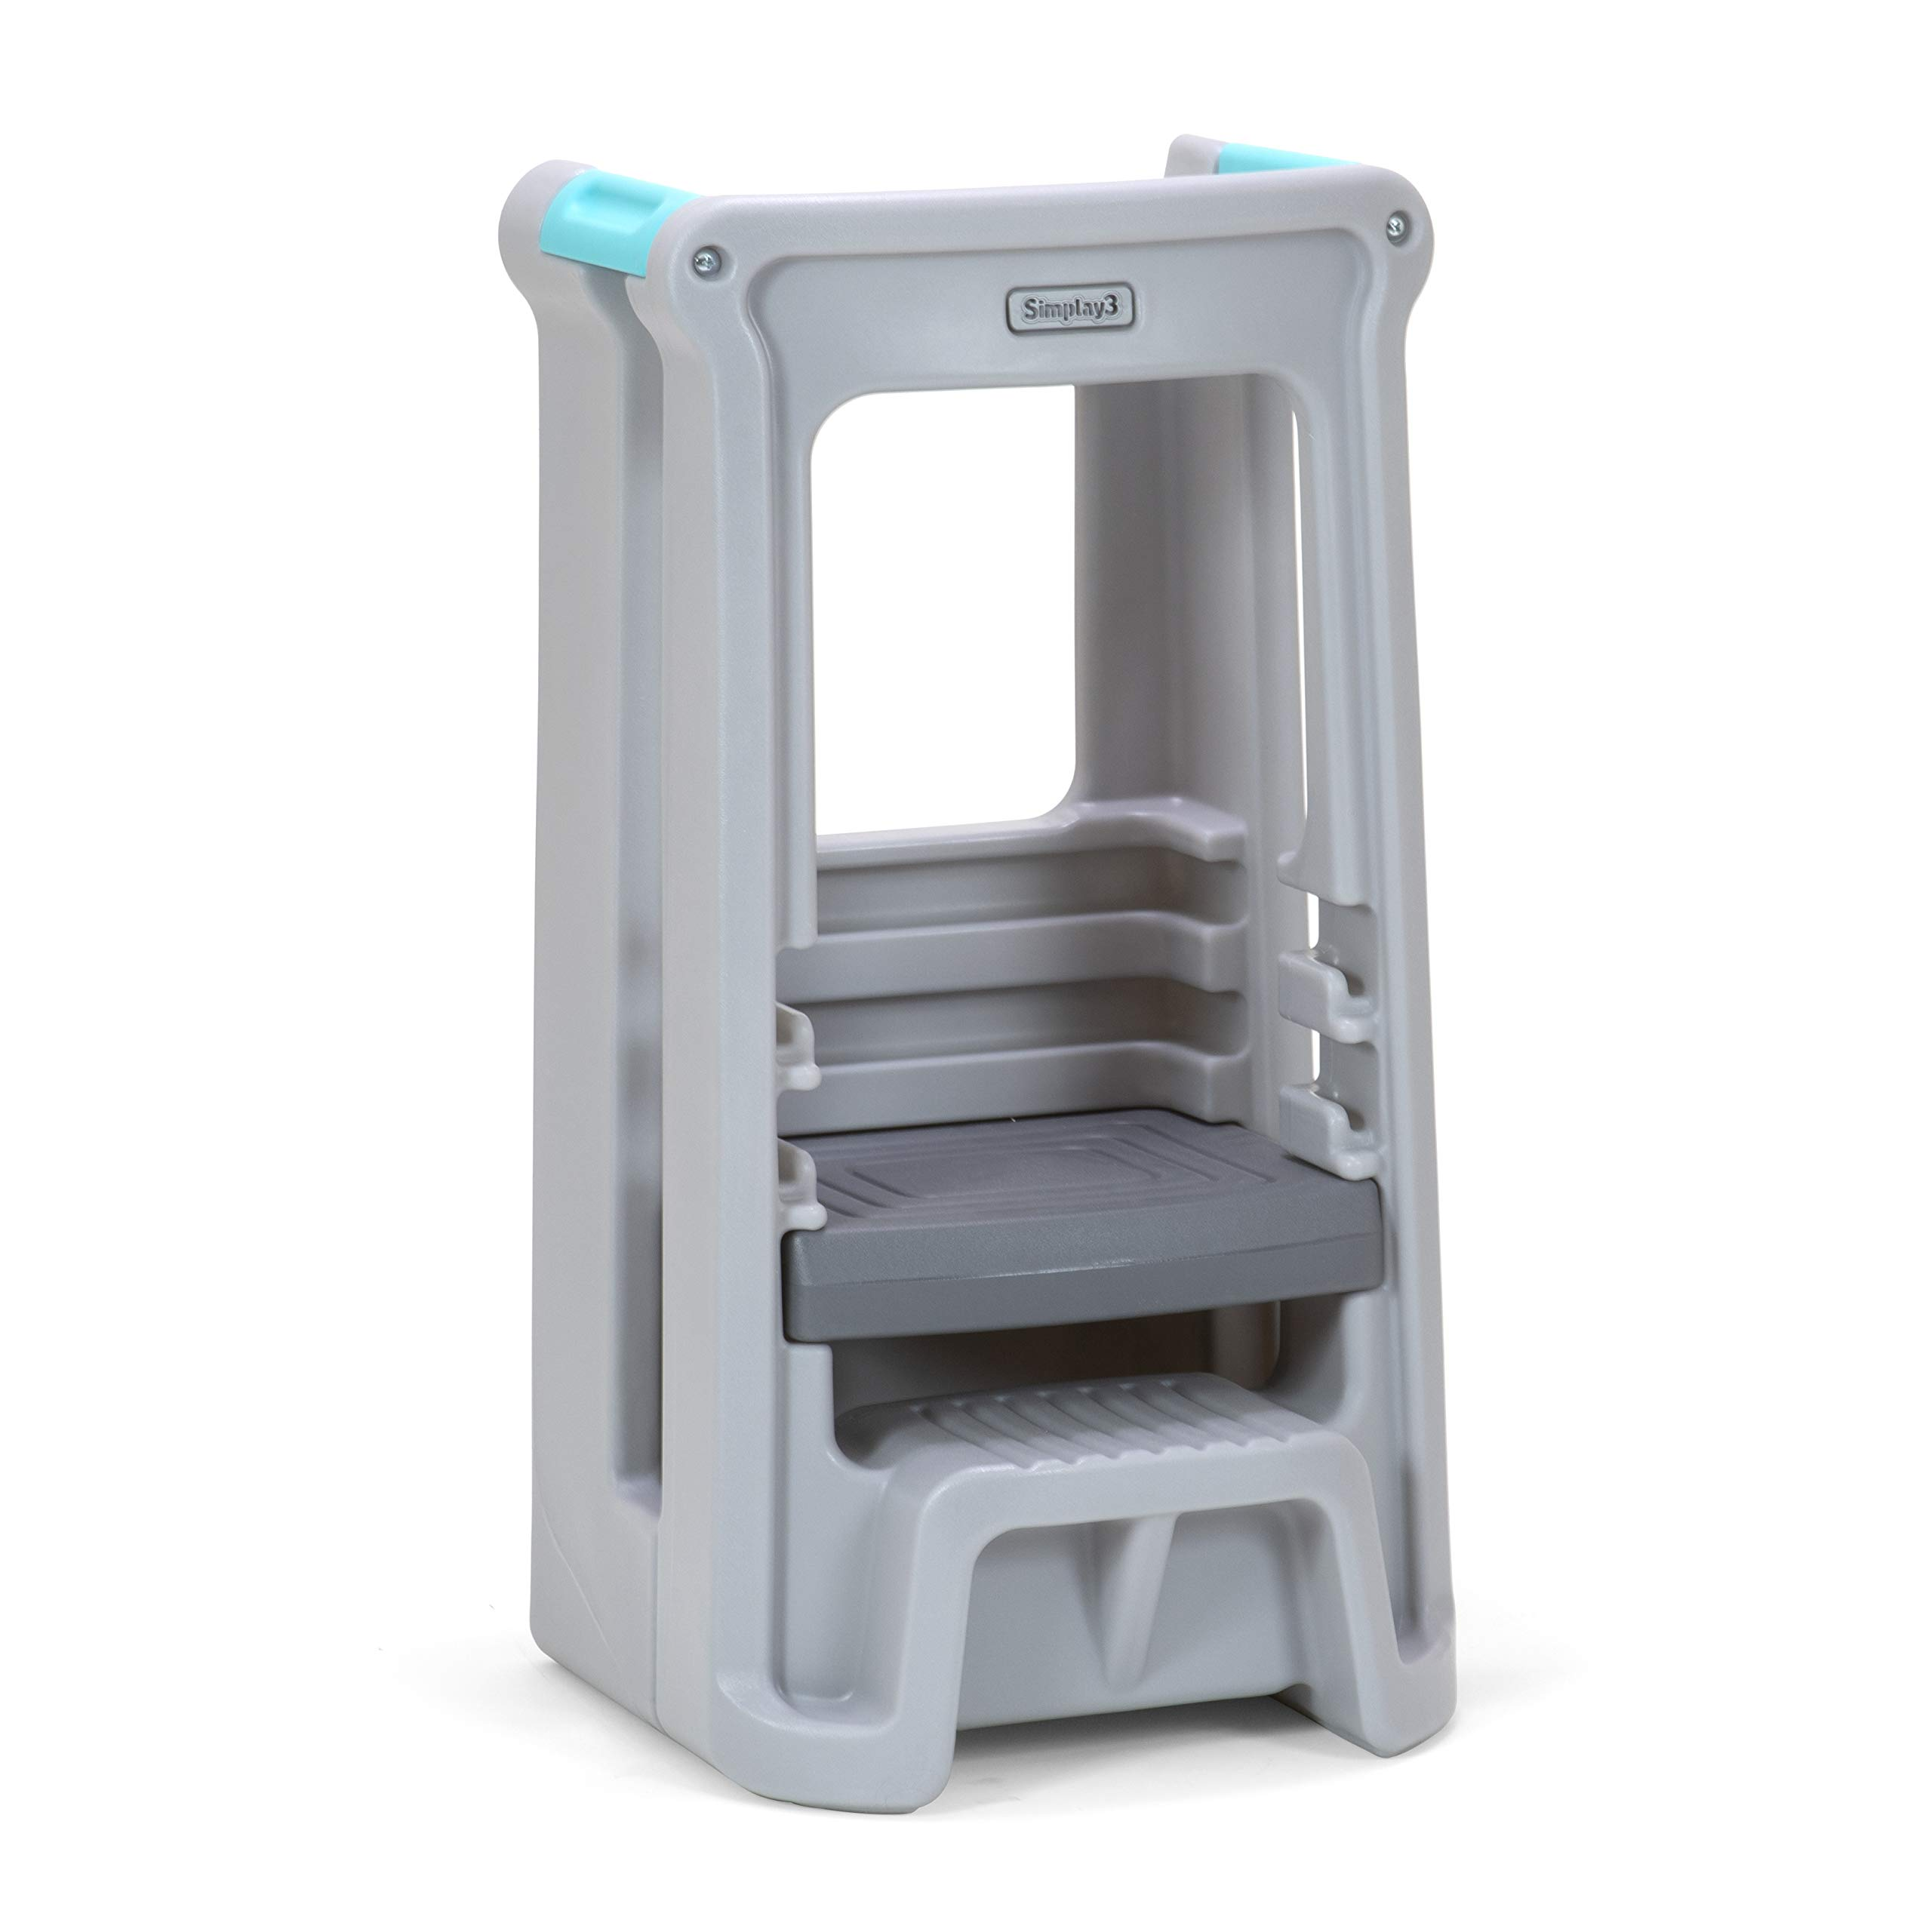 Simplay3 Toddler Tower Childrens Step Stool with Three Adjustable Heights, Gray by Simplay3 (Image #2)